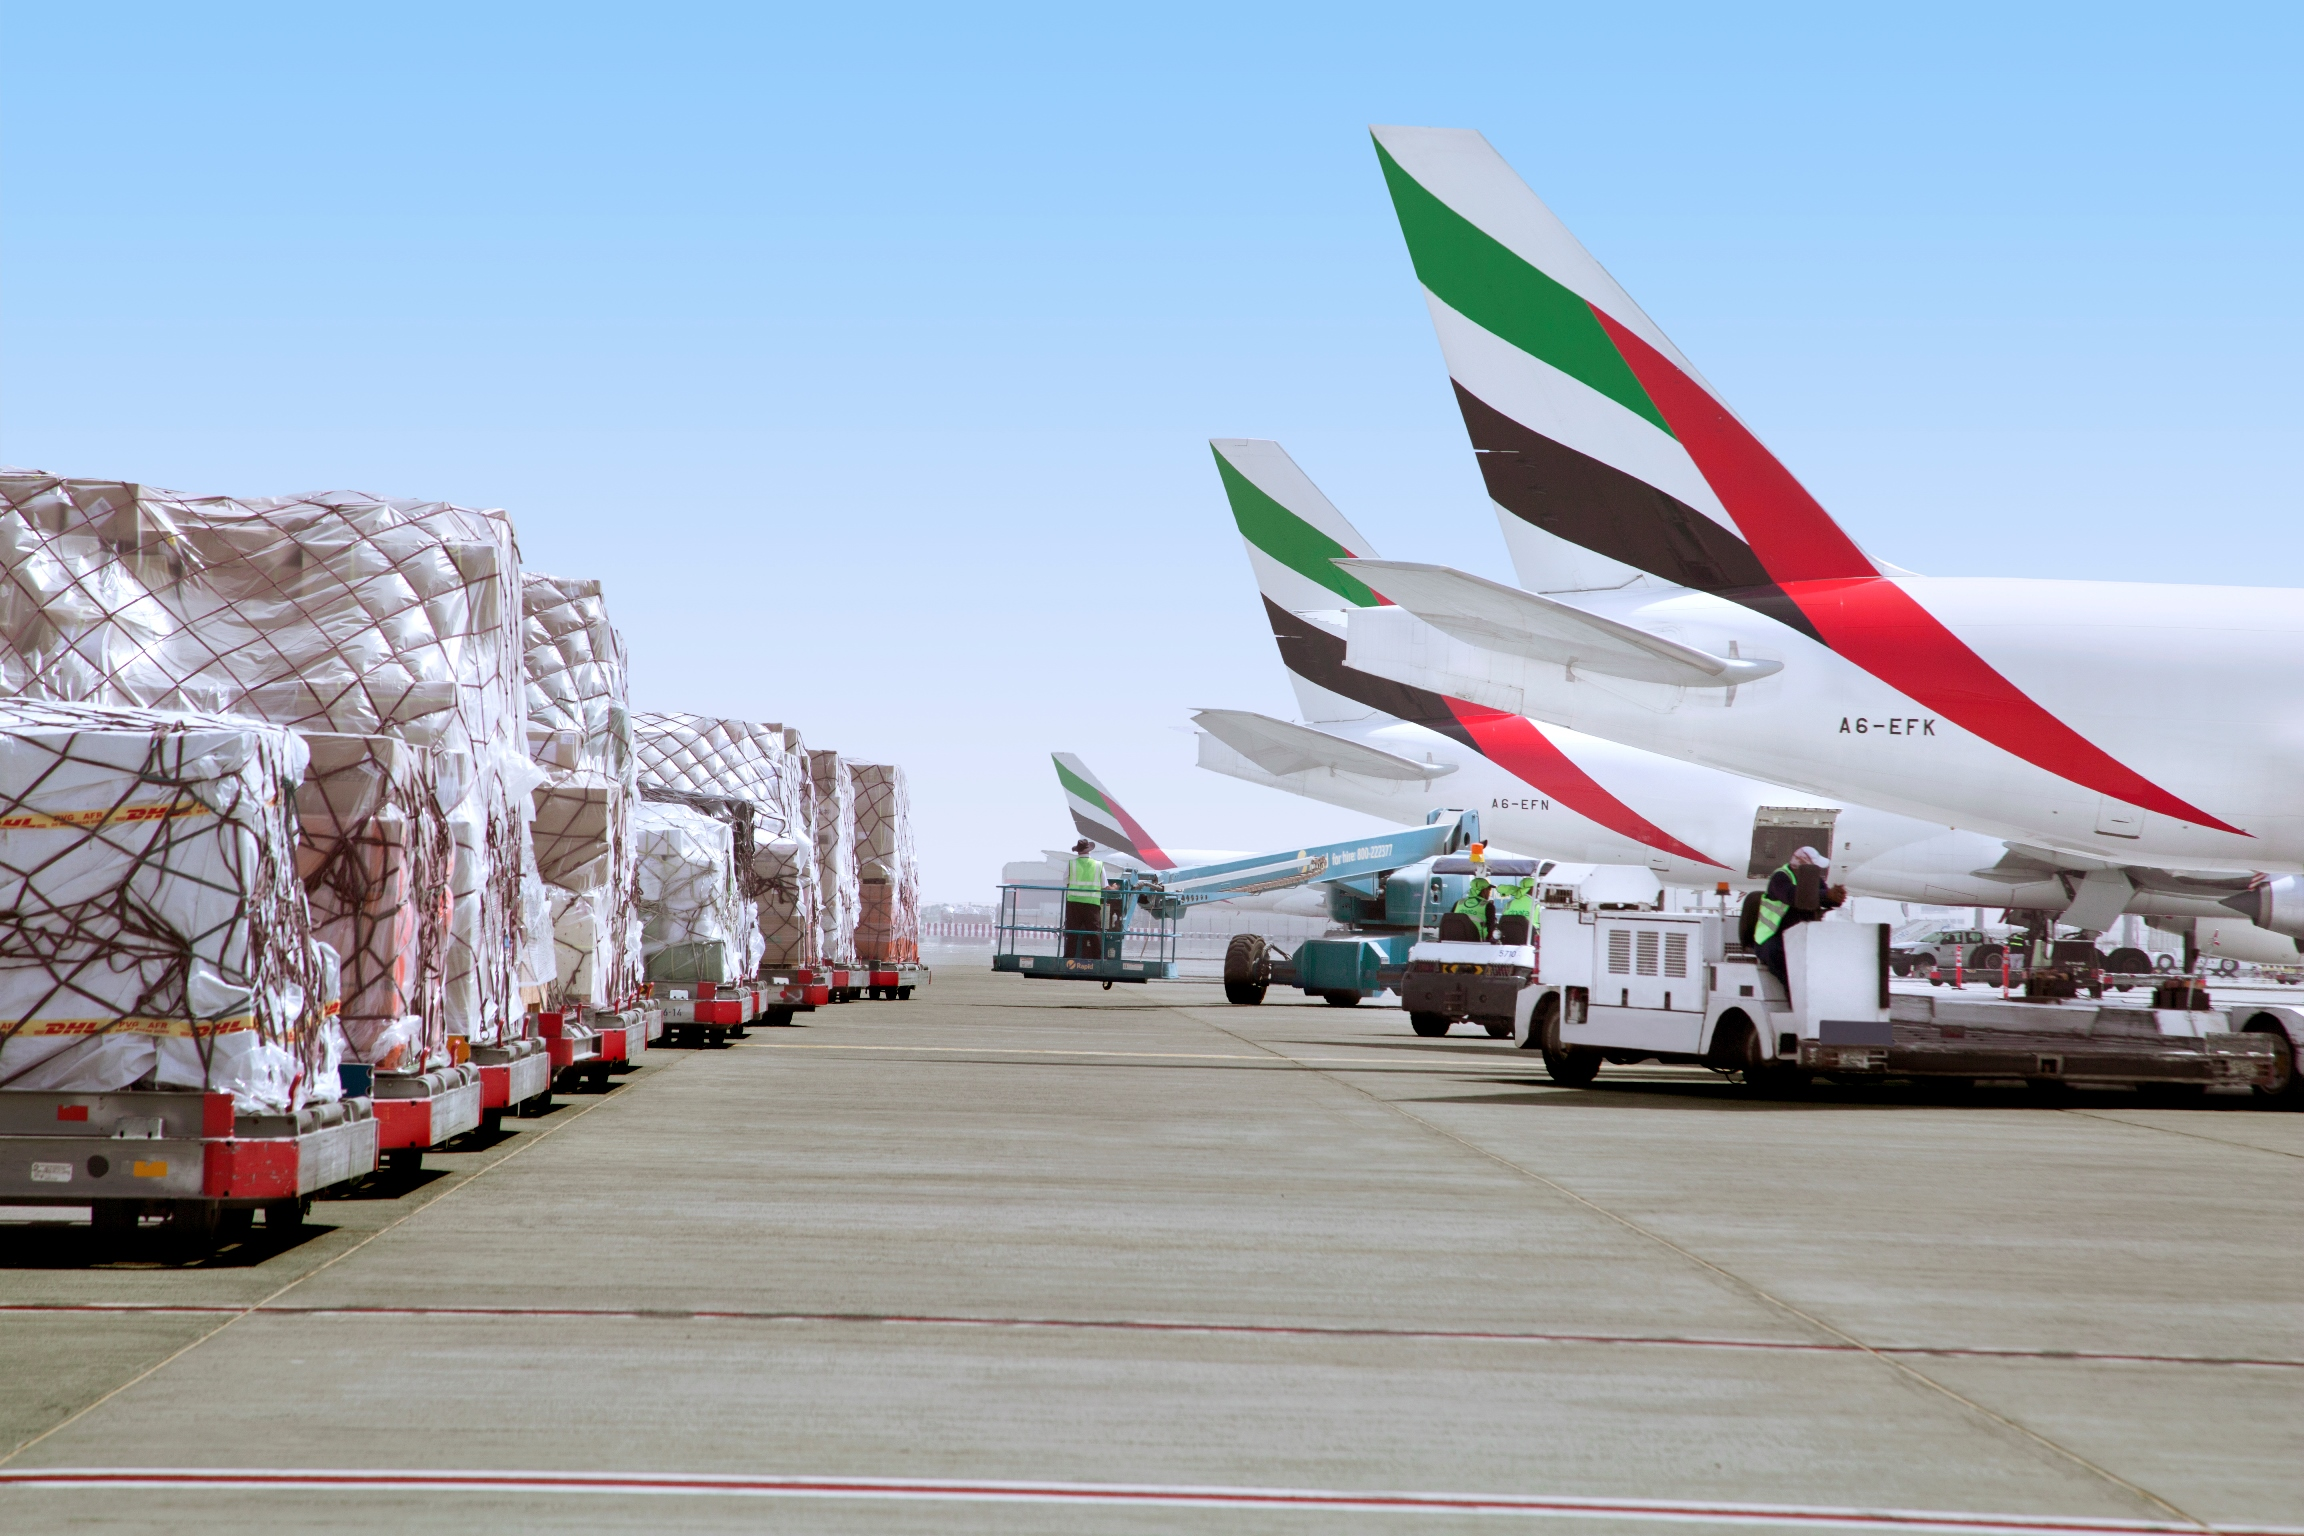 Emirates SkyCargo uplifts record volumes of mangoes & perishables from Mumbai